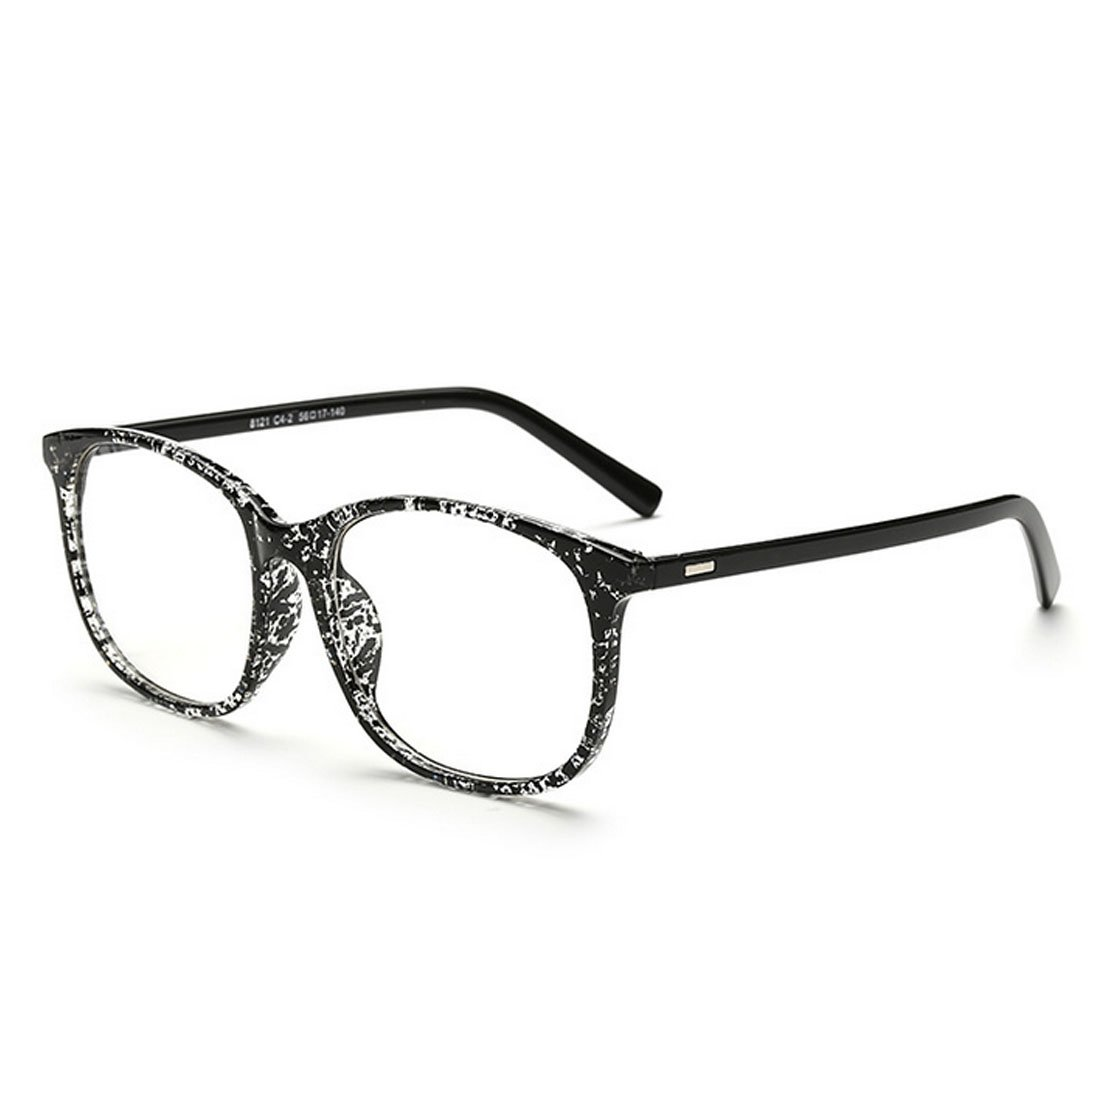 D.King Vintage Inspired Classic Square Glasses Frame Eyewear Clear Lens DK8121-1